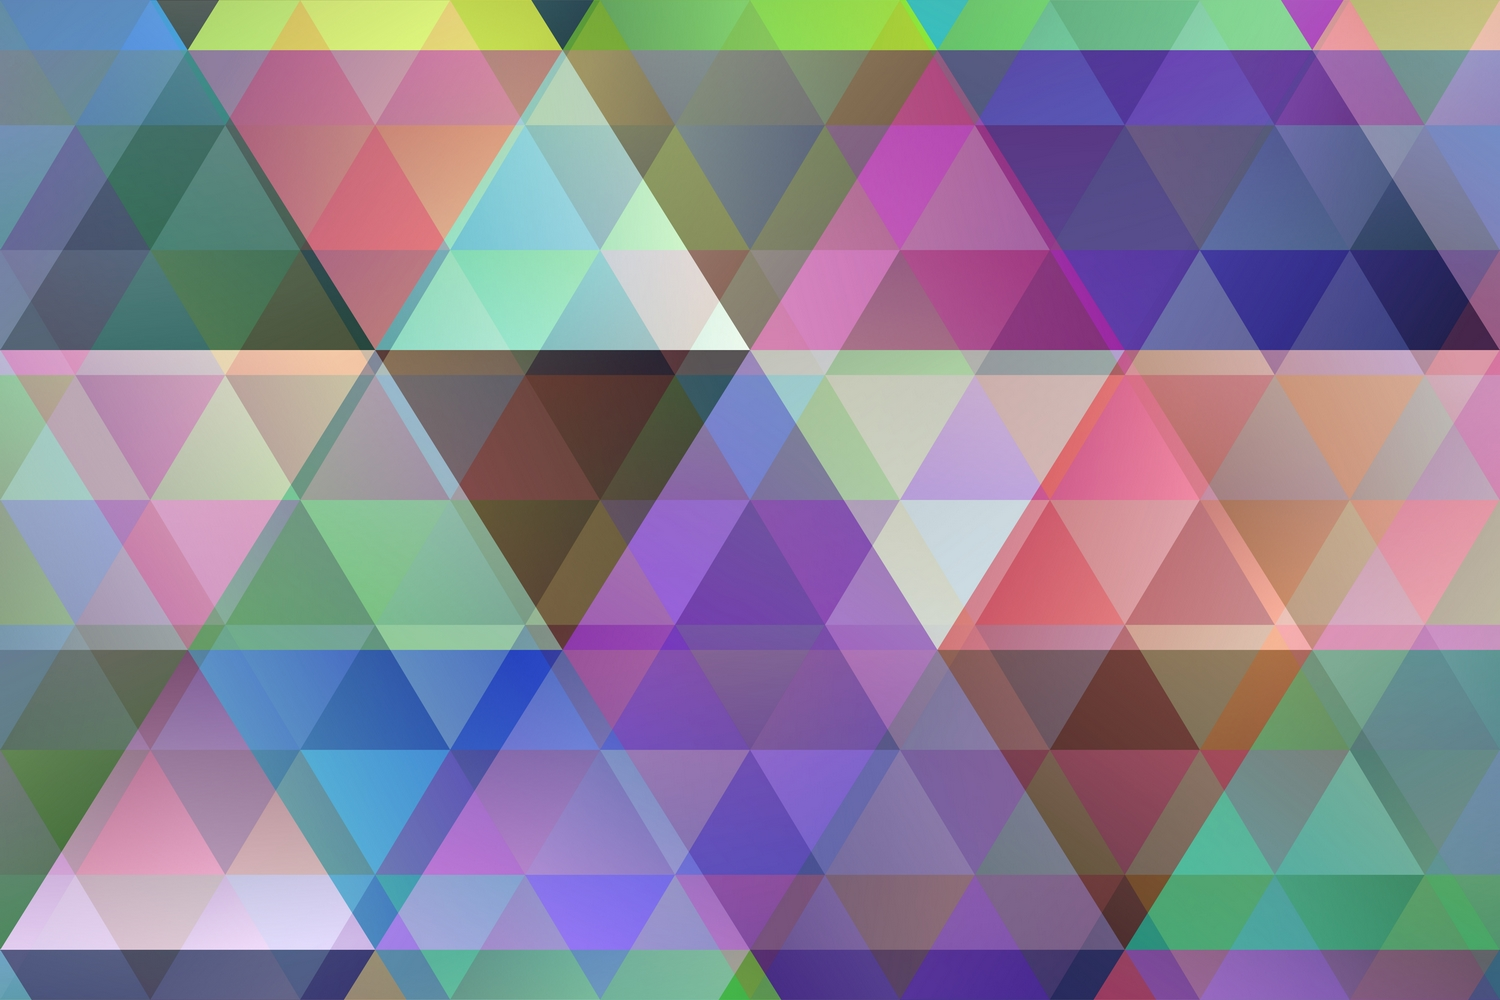 24 Gradient Polygon Backgrounds AI, EPS, JPG 5000x5000 example image 17